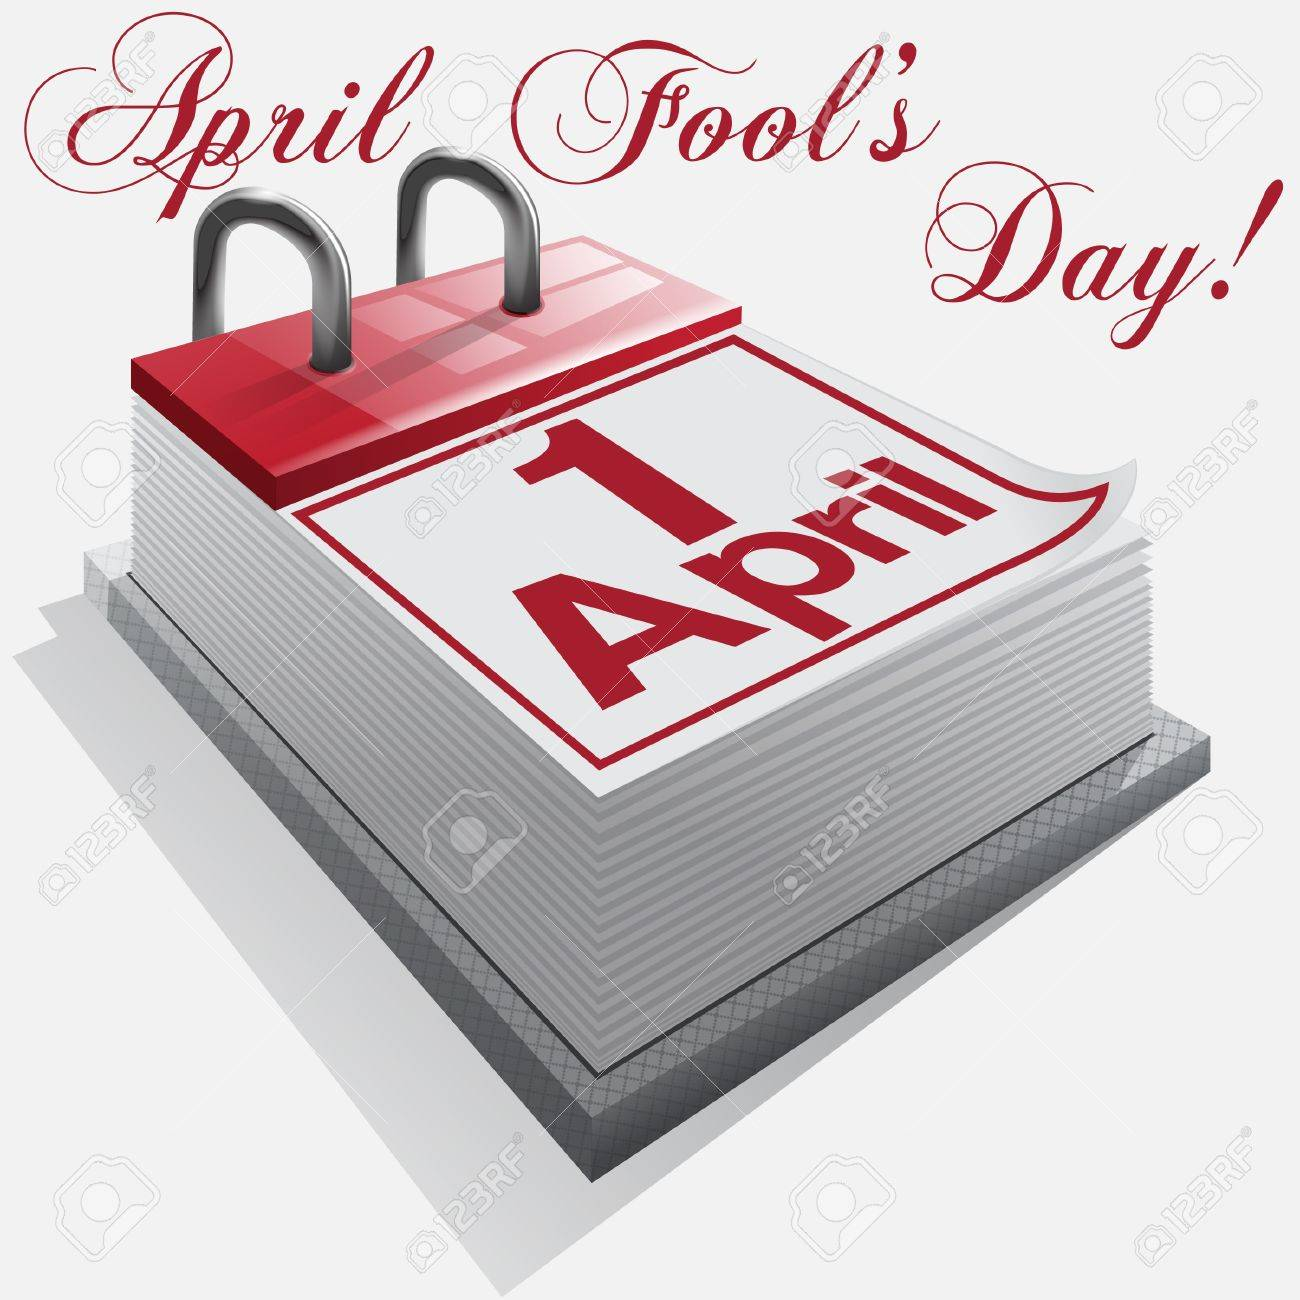 1 April, April Fool's Day, Day of laughter. Stock Vector - 18235186